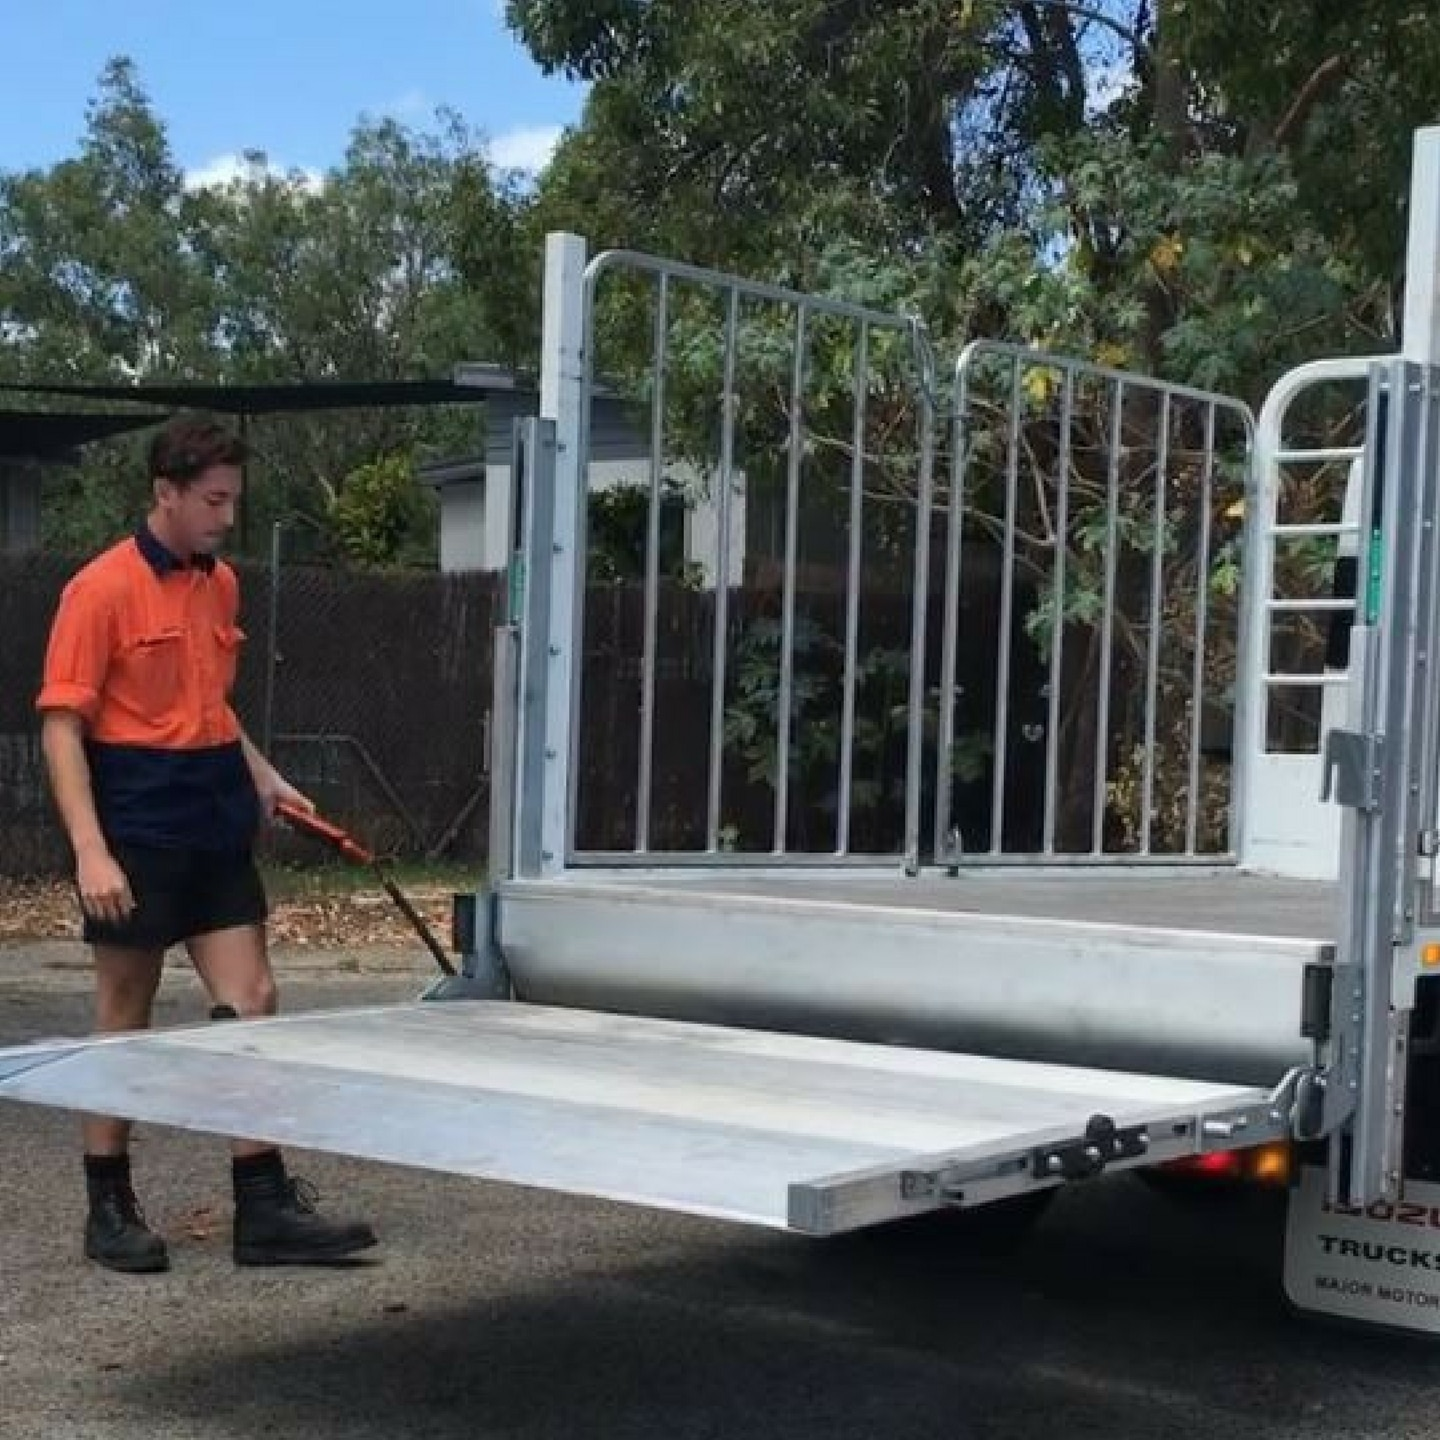 Truck Tail lift - Mule Engineering